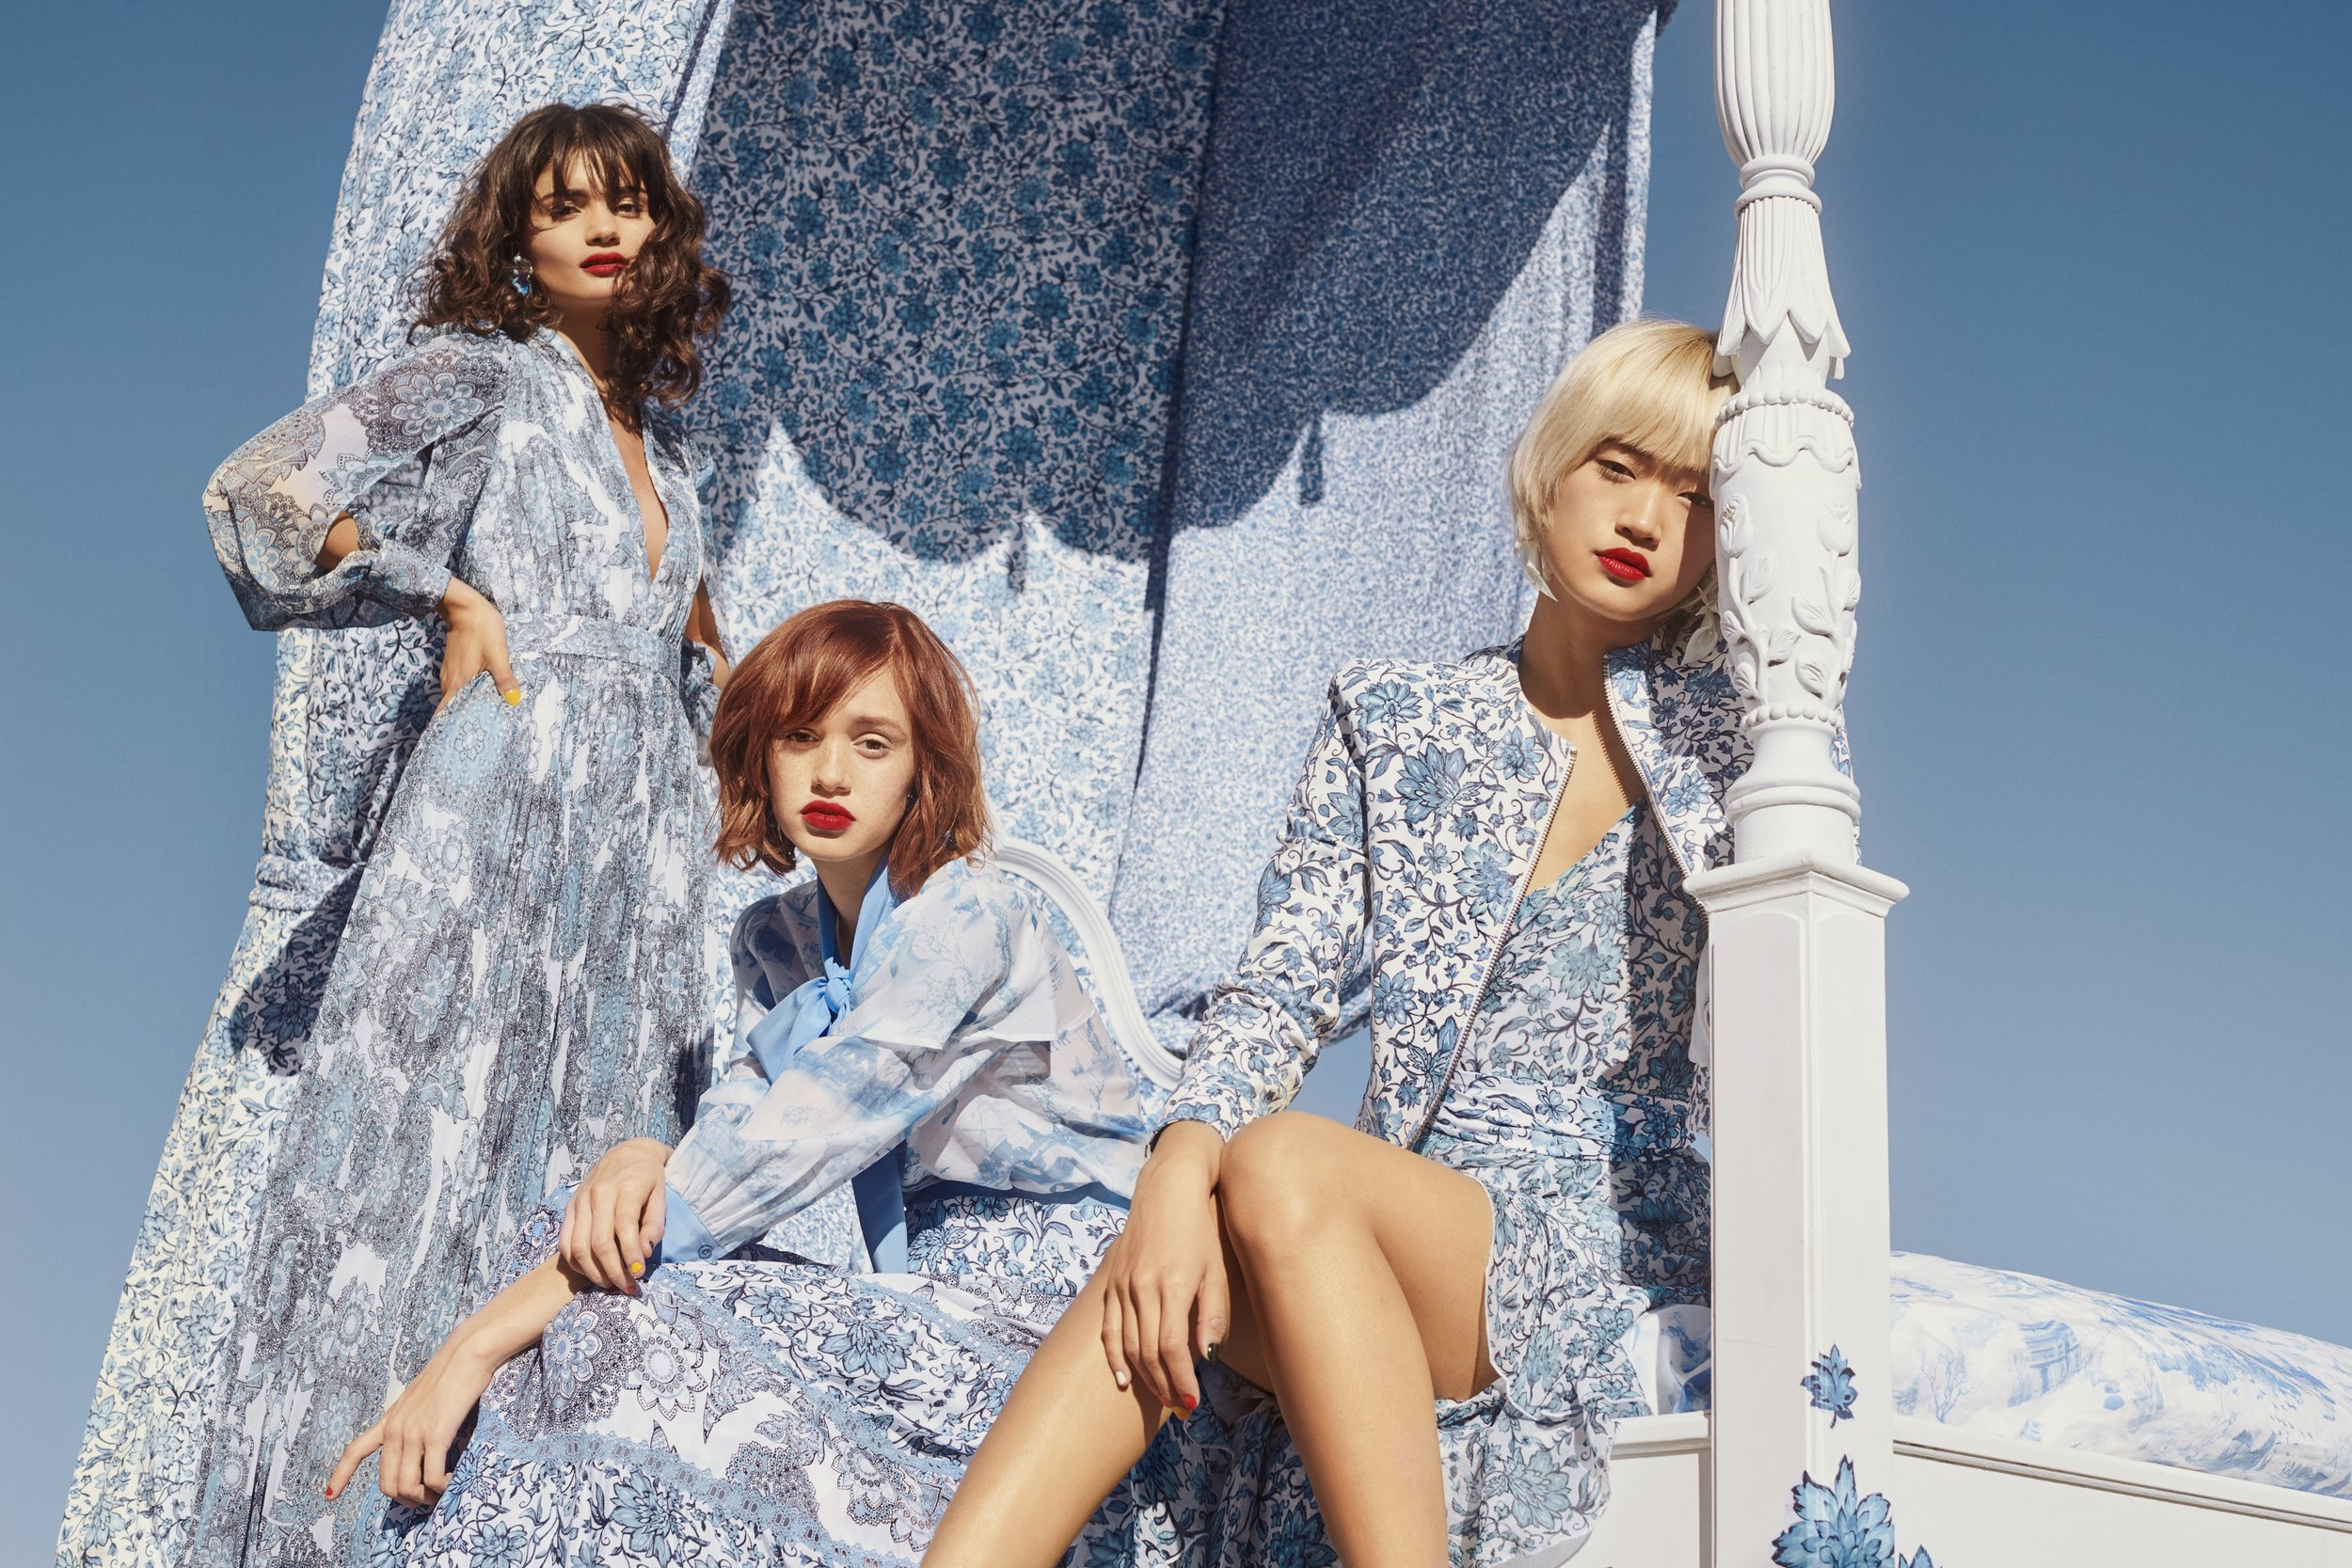 M771_DKR_Alice+Olivia_Harrods_Blue_07_1303_FNL.jpeg